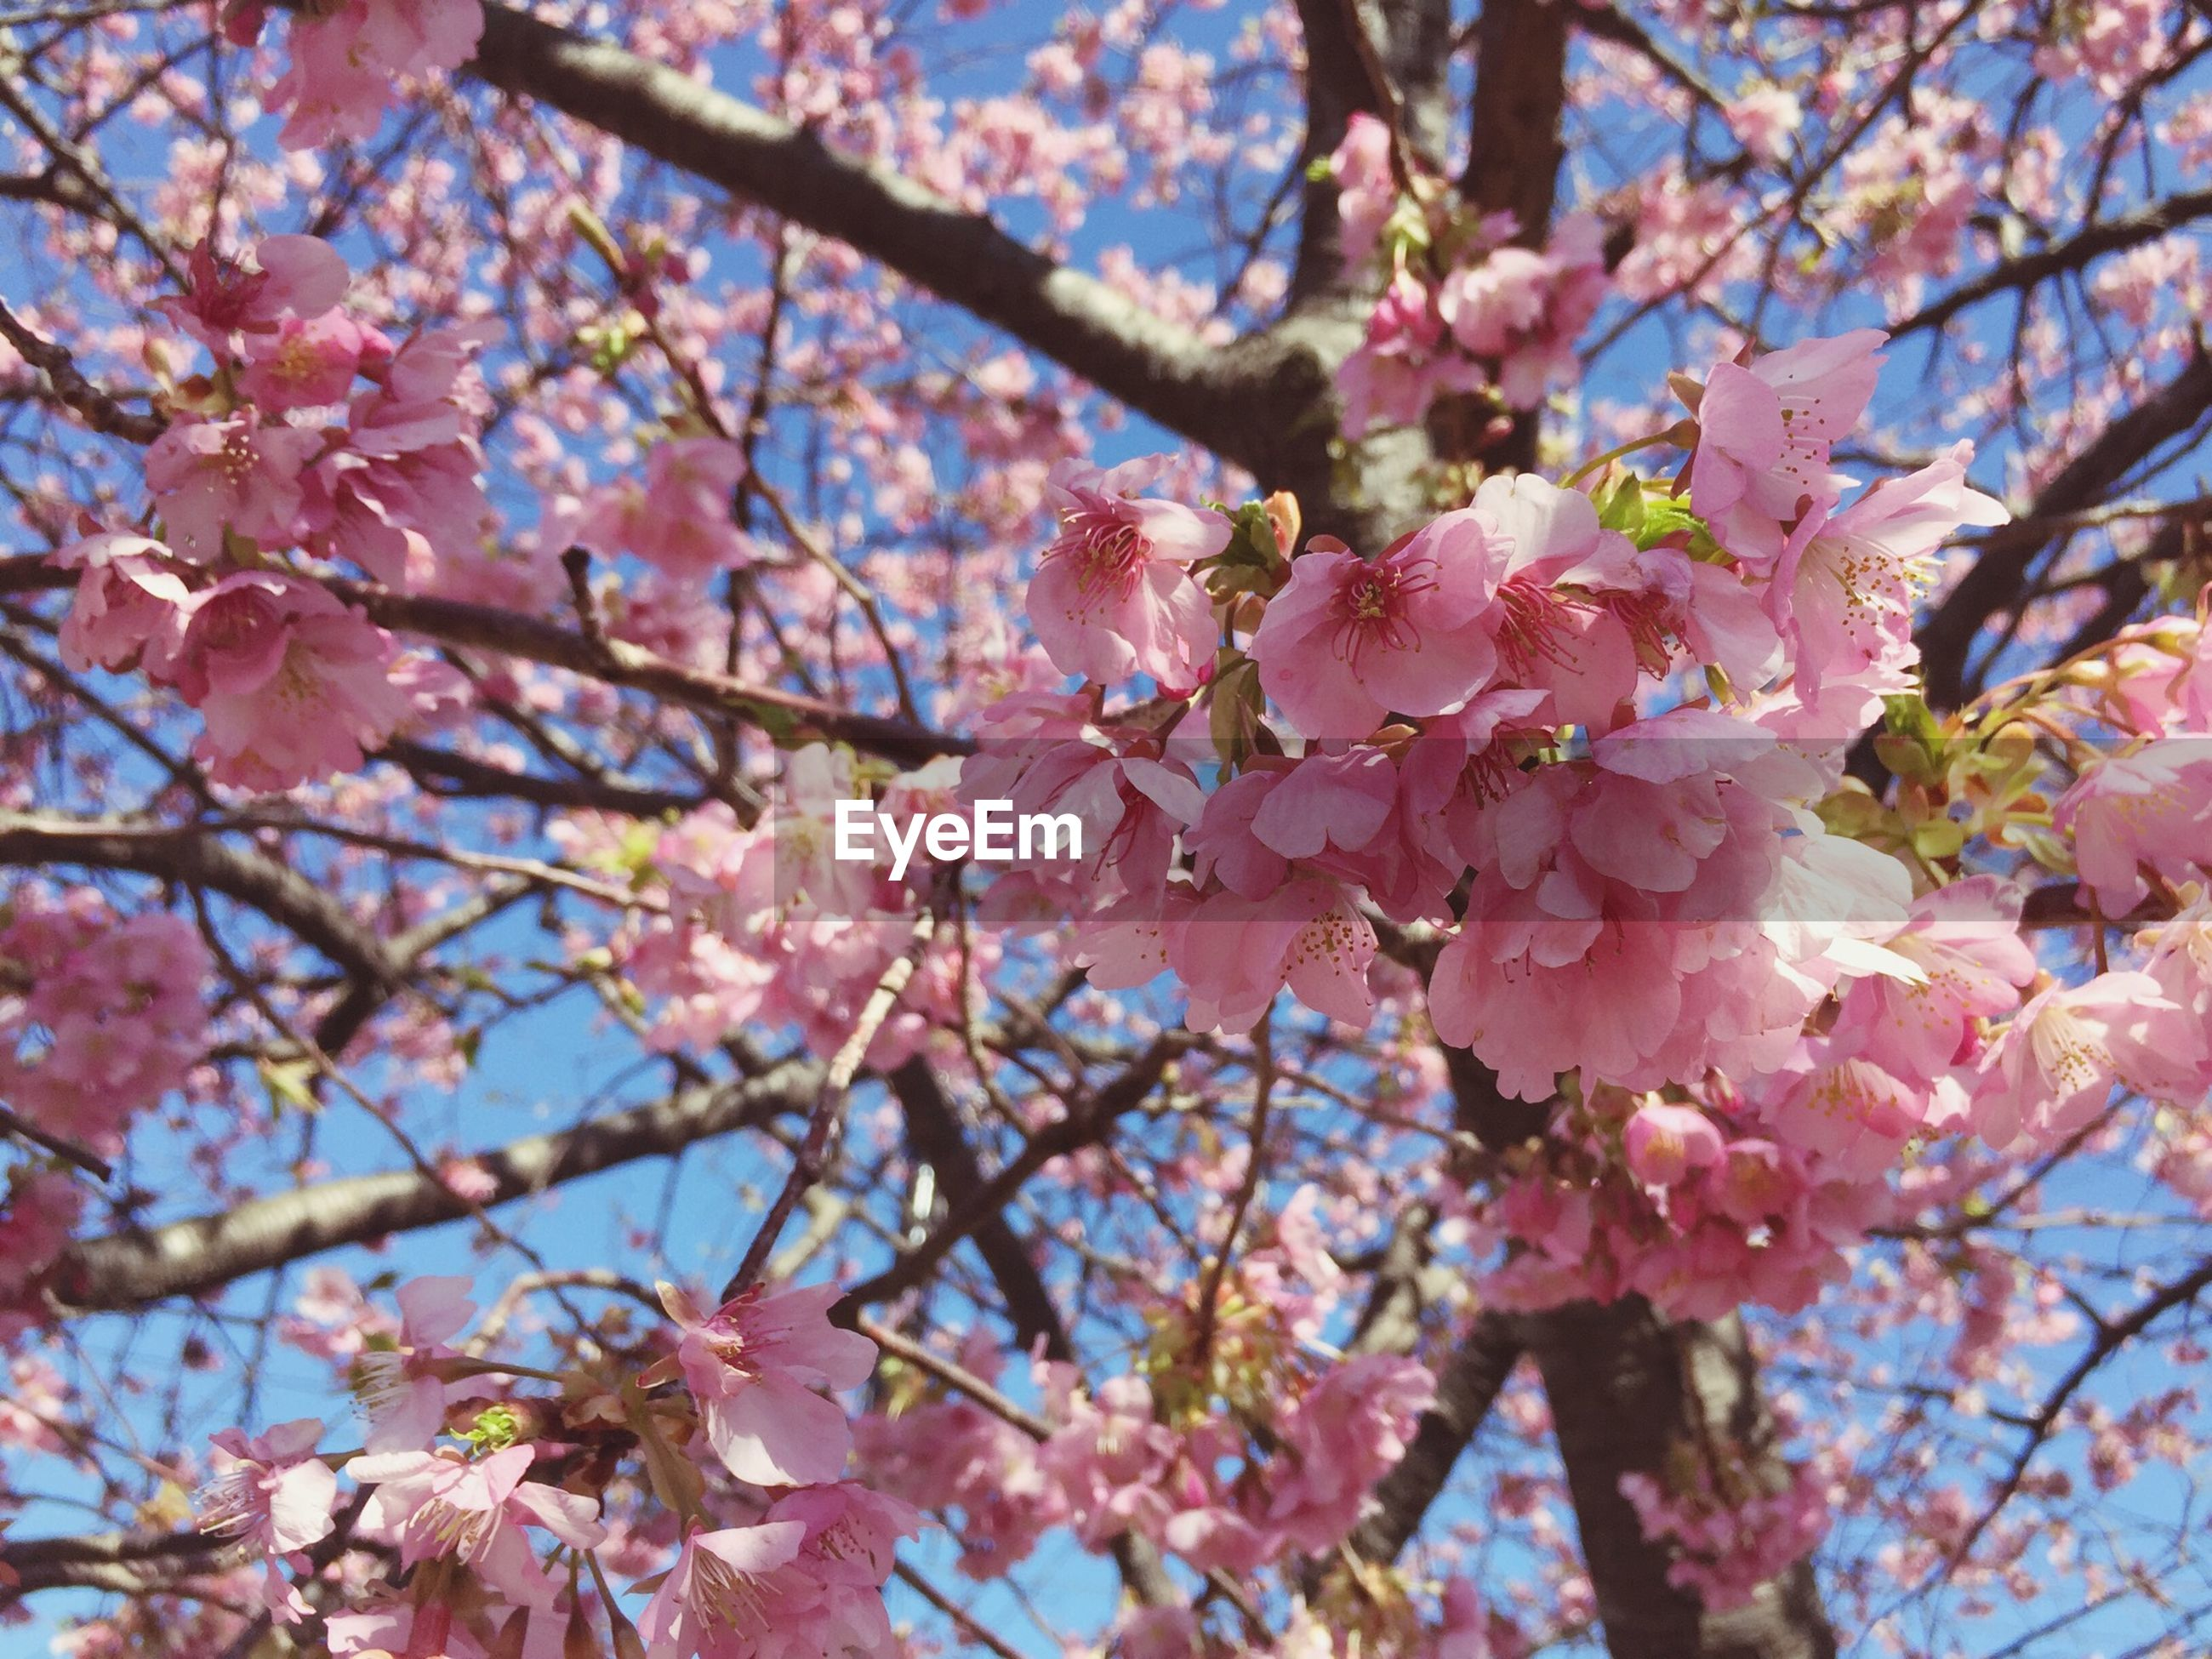 flower, branch, tree, cherry blossom, freshness, low angle view, cherry tree, growth, pink color, blossom, beauty in nature, fragility, nature, springtime, fruit tree, in bloom, pink, blooming, twig, orchard